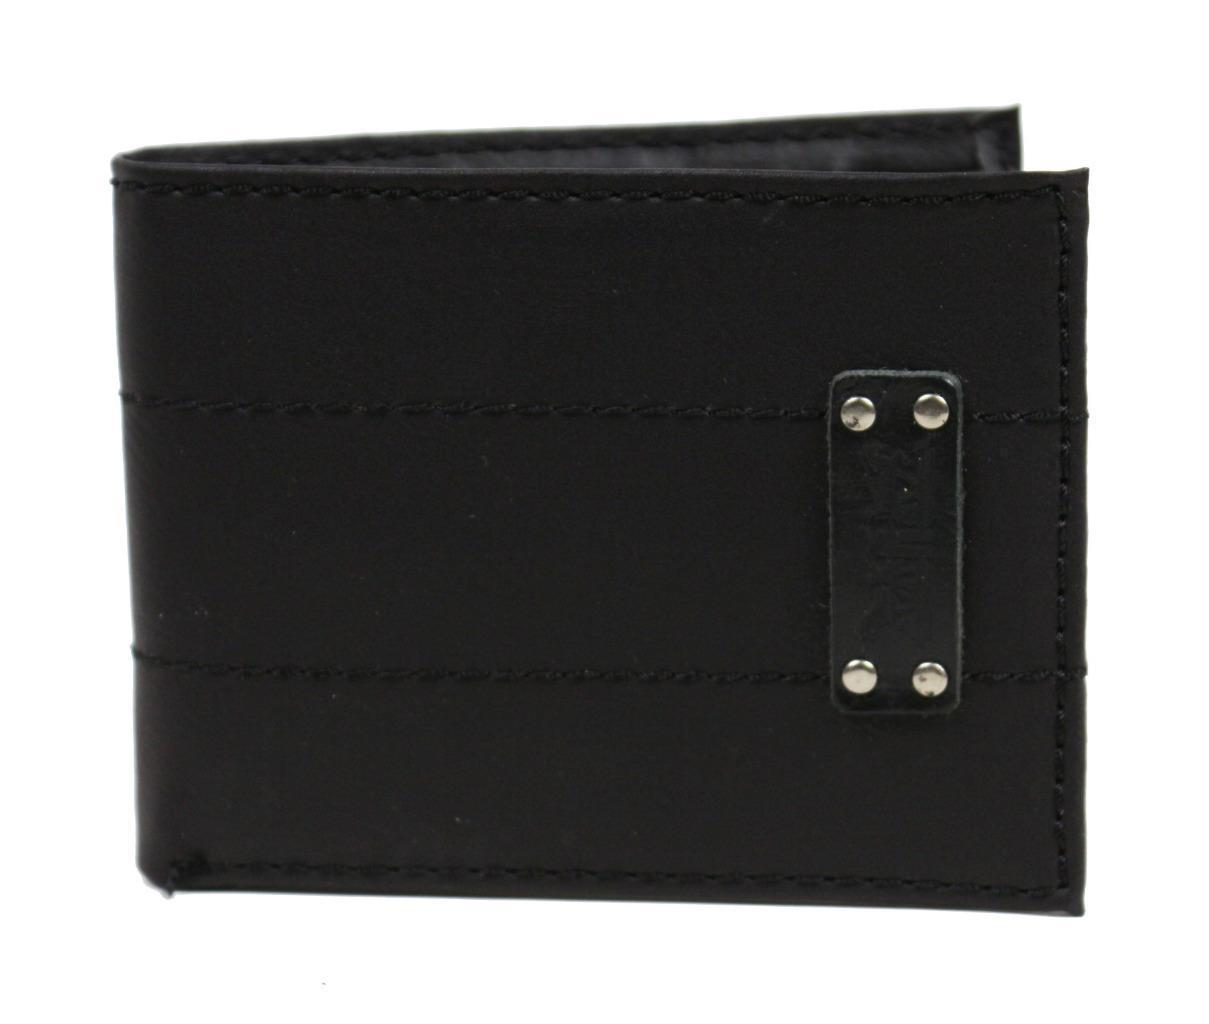 NEW LEVI'S MEN'S COATED LEATHER MANMADE INTERIOR SLIMFOLD WALLET BLACK 31LV13C8